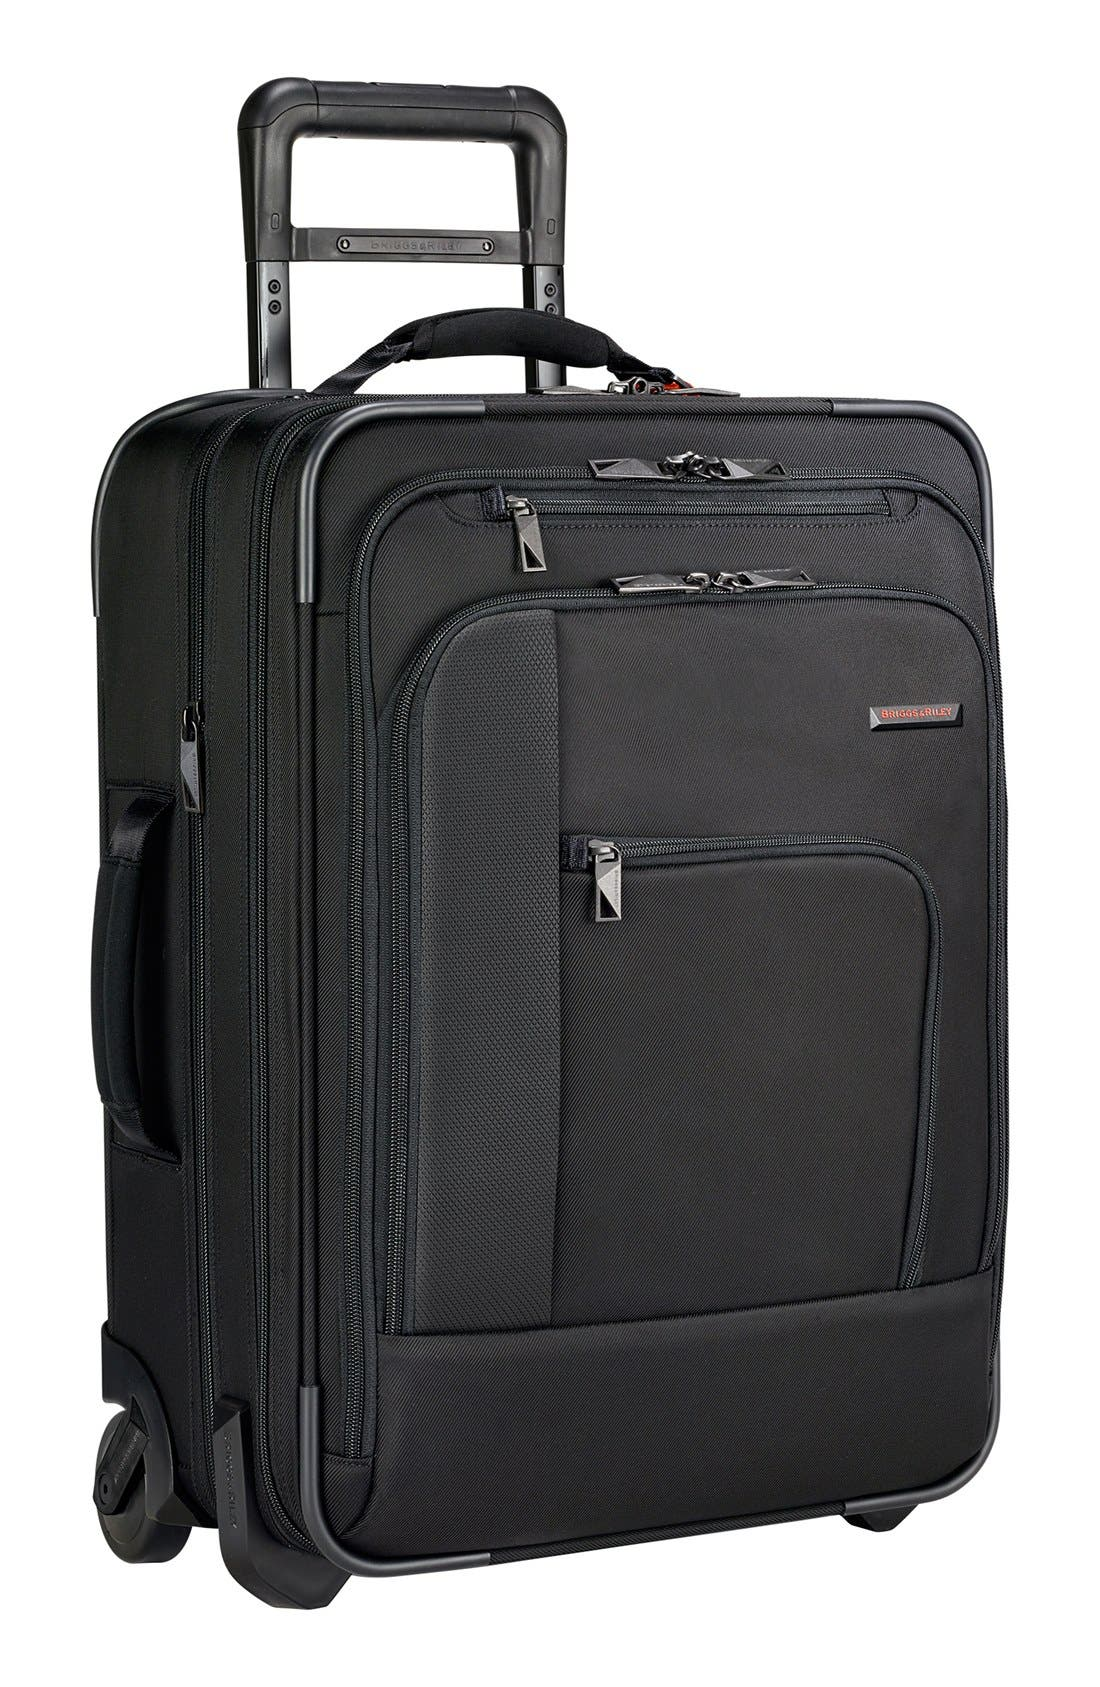 BRIGGS & RILEY 'Verb - Pilot' Rolling Carry-On, Main, color, BLACK